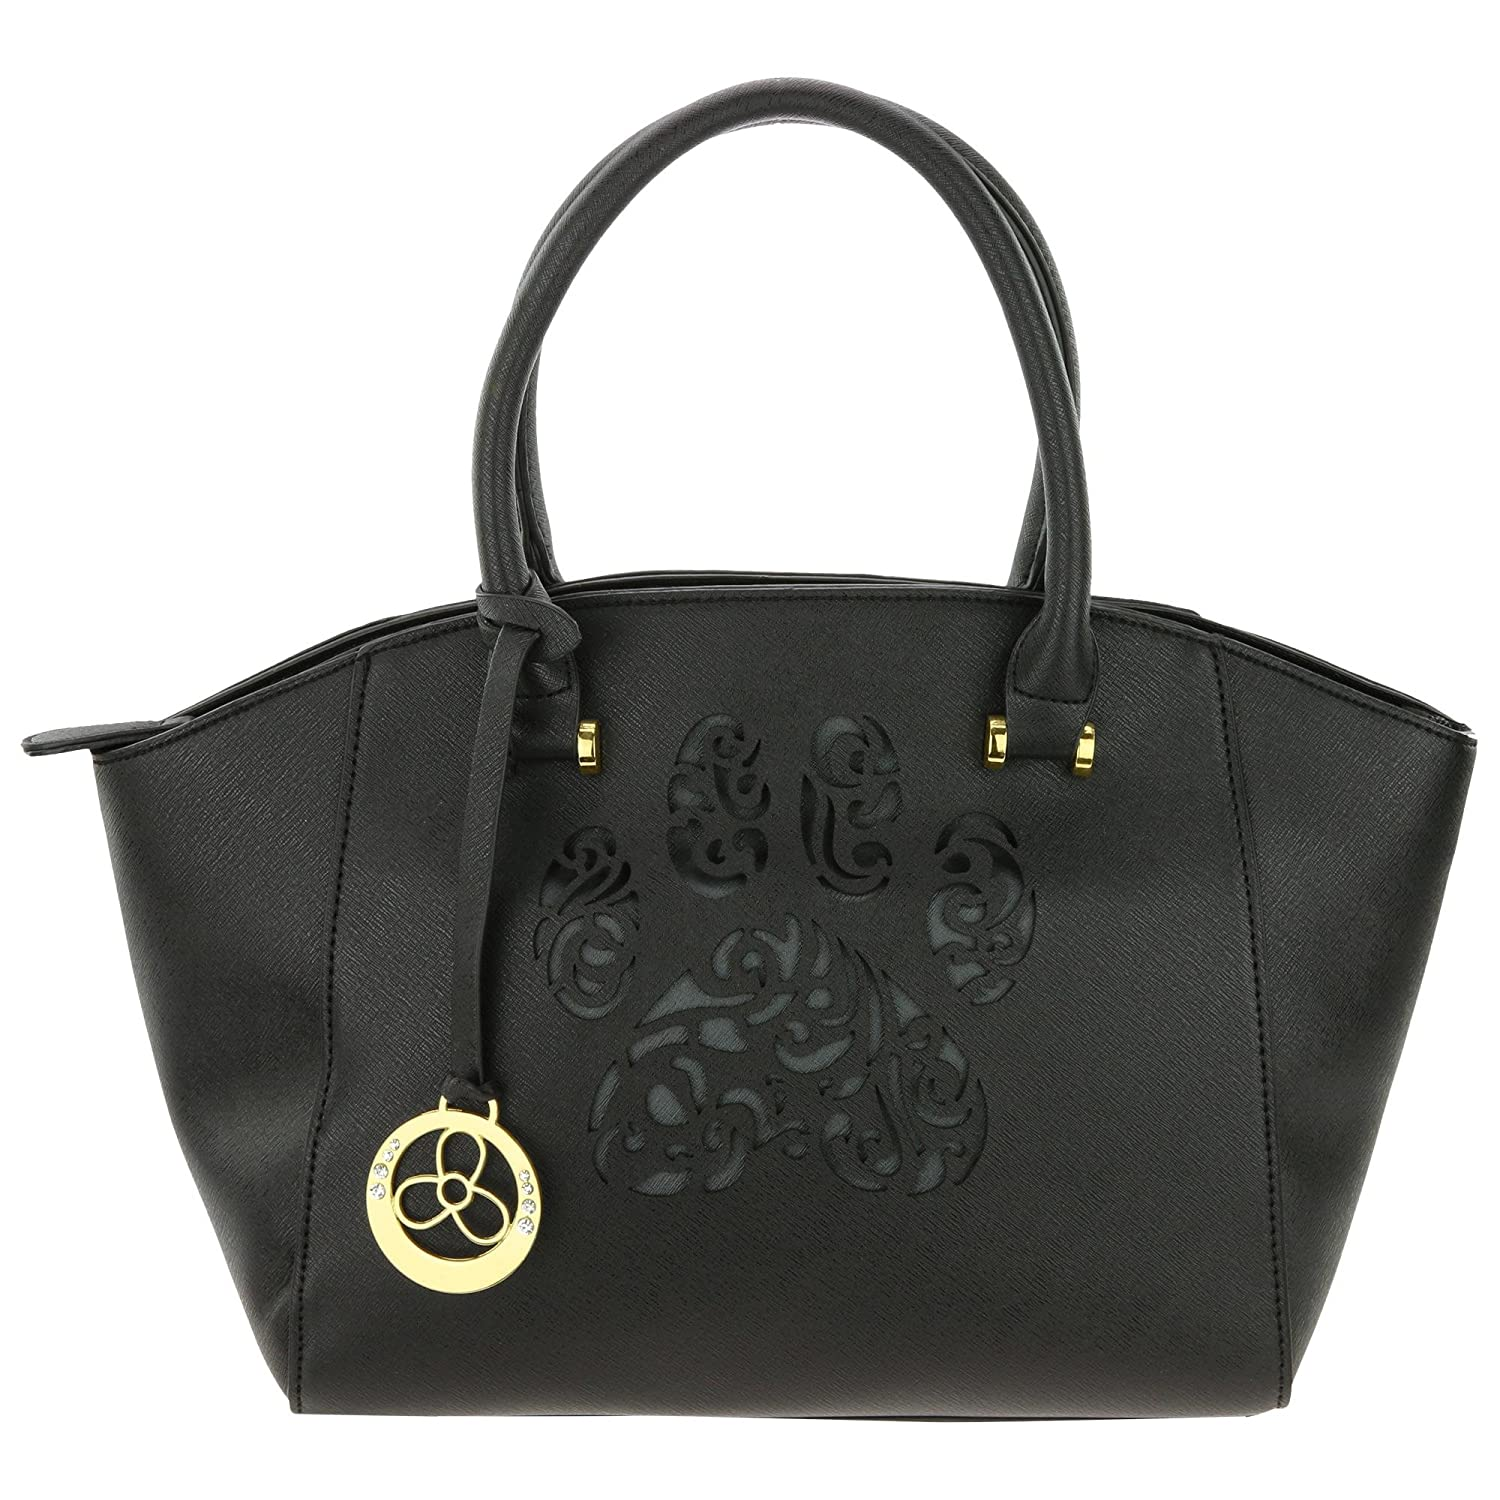 Pawsitively Beautiful Handbag (Black)  Handbags  Amazon.com e37f936c00027